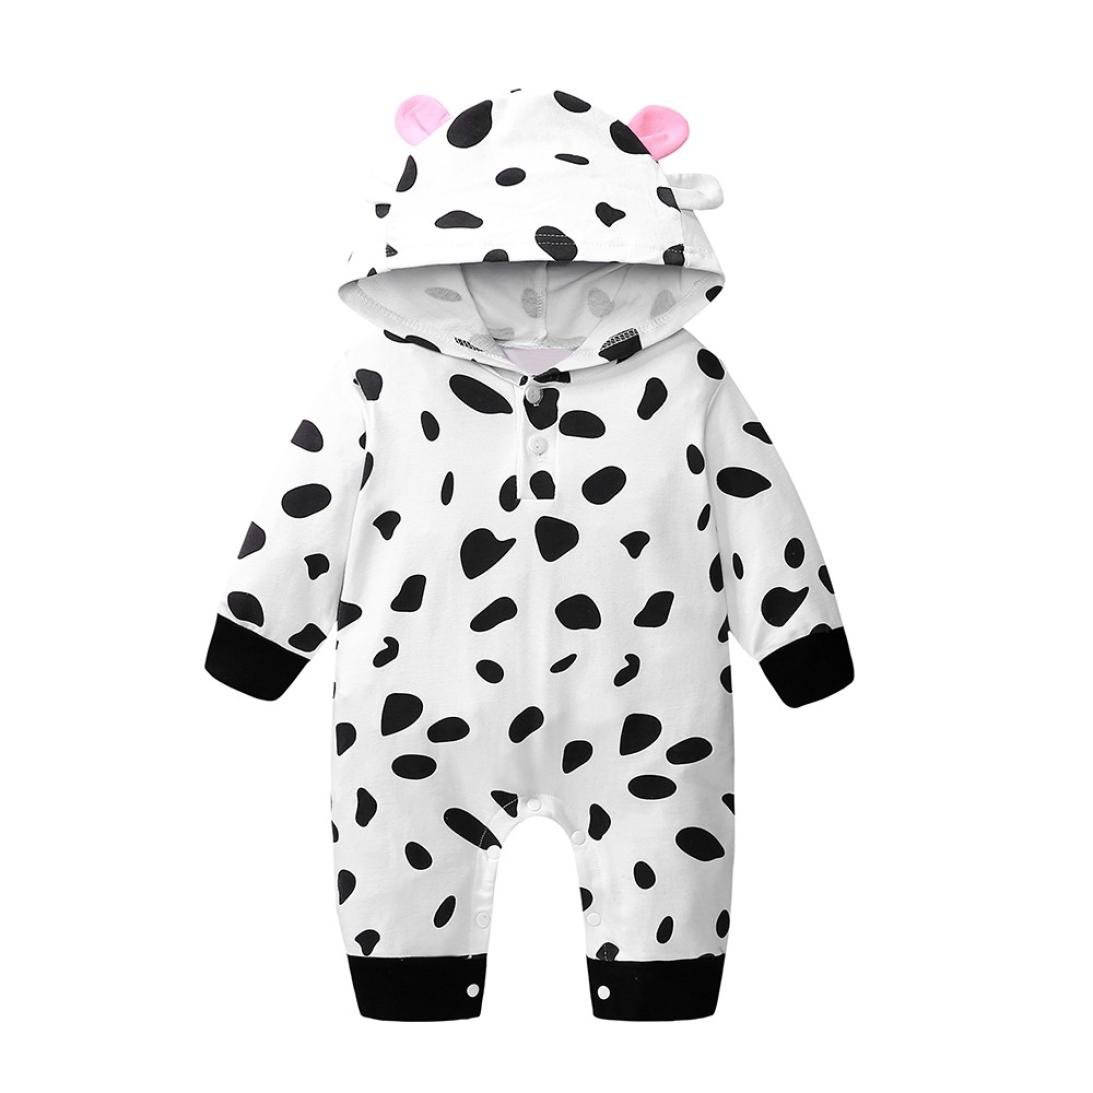 dfd6cff1ab66d7 Amazon.com  Toddler Baby Girls Boys Clothes Sets for 0-24 Months ...